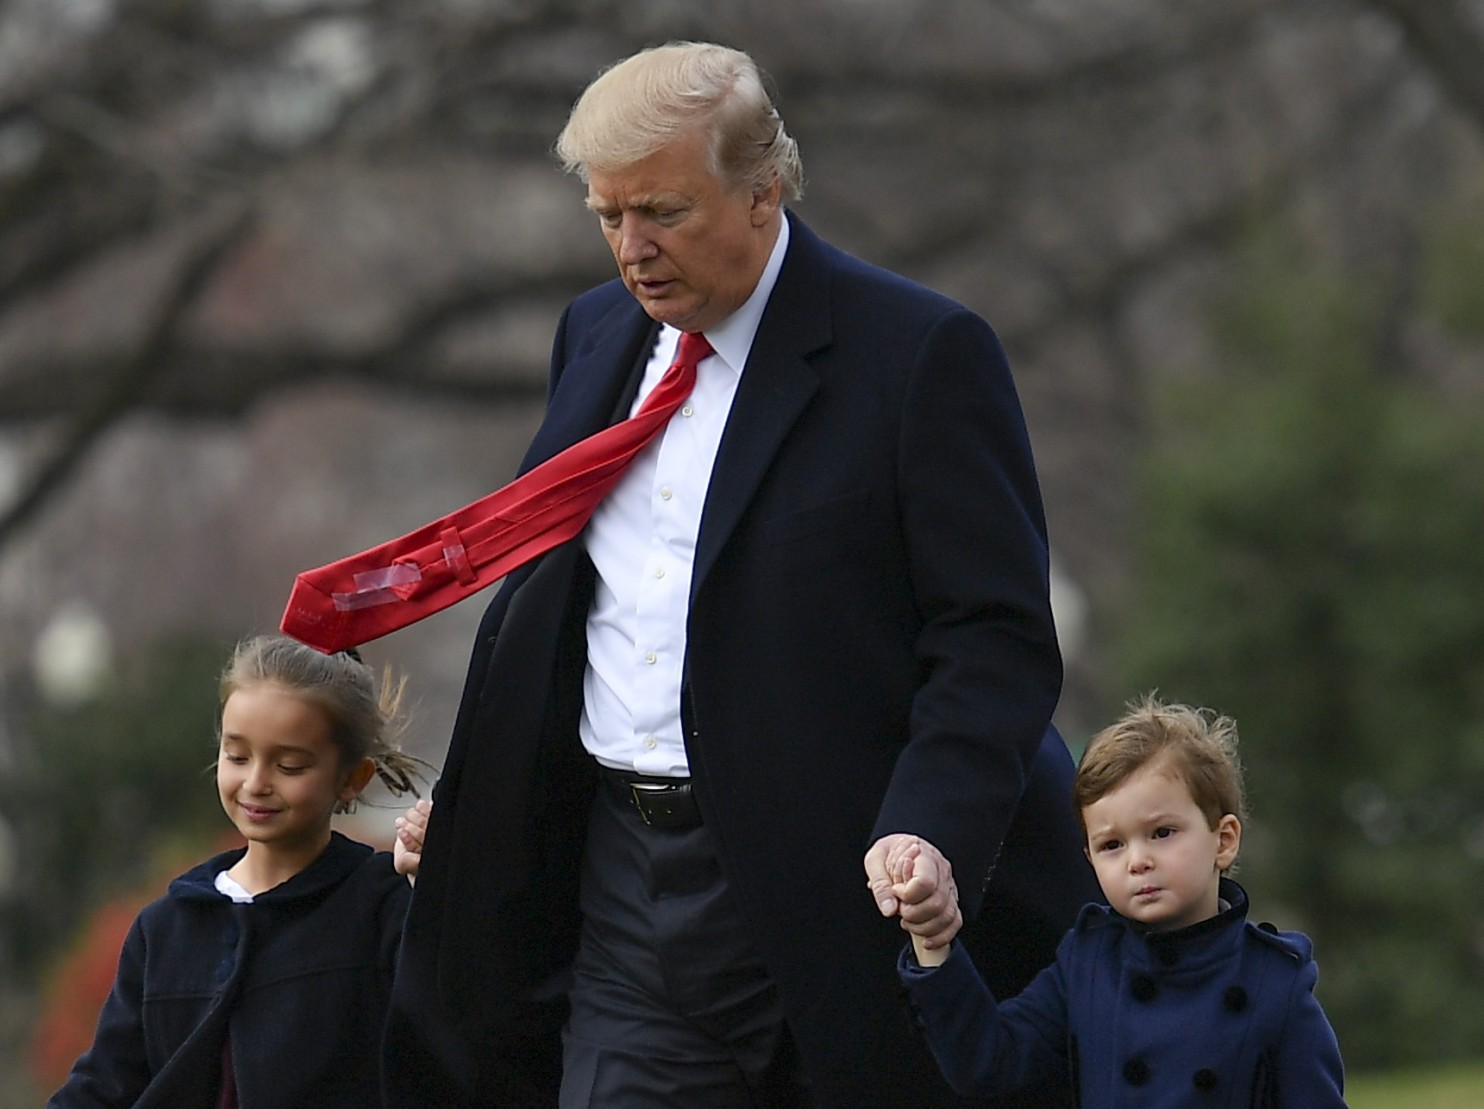 President Trump walks to Marine One on the South Lawn of the White House with his grandchildren Joseph and Arabella Kushner, before departing for Florida on March 3. (Ricky Carioti/The Washington Post).